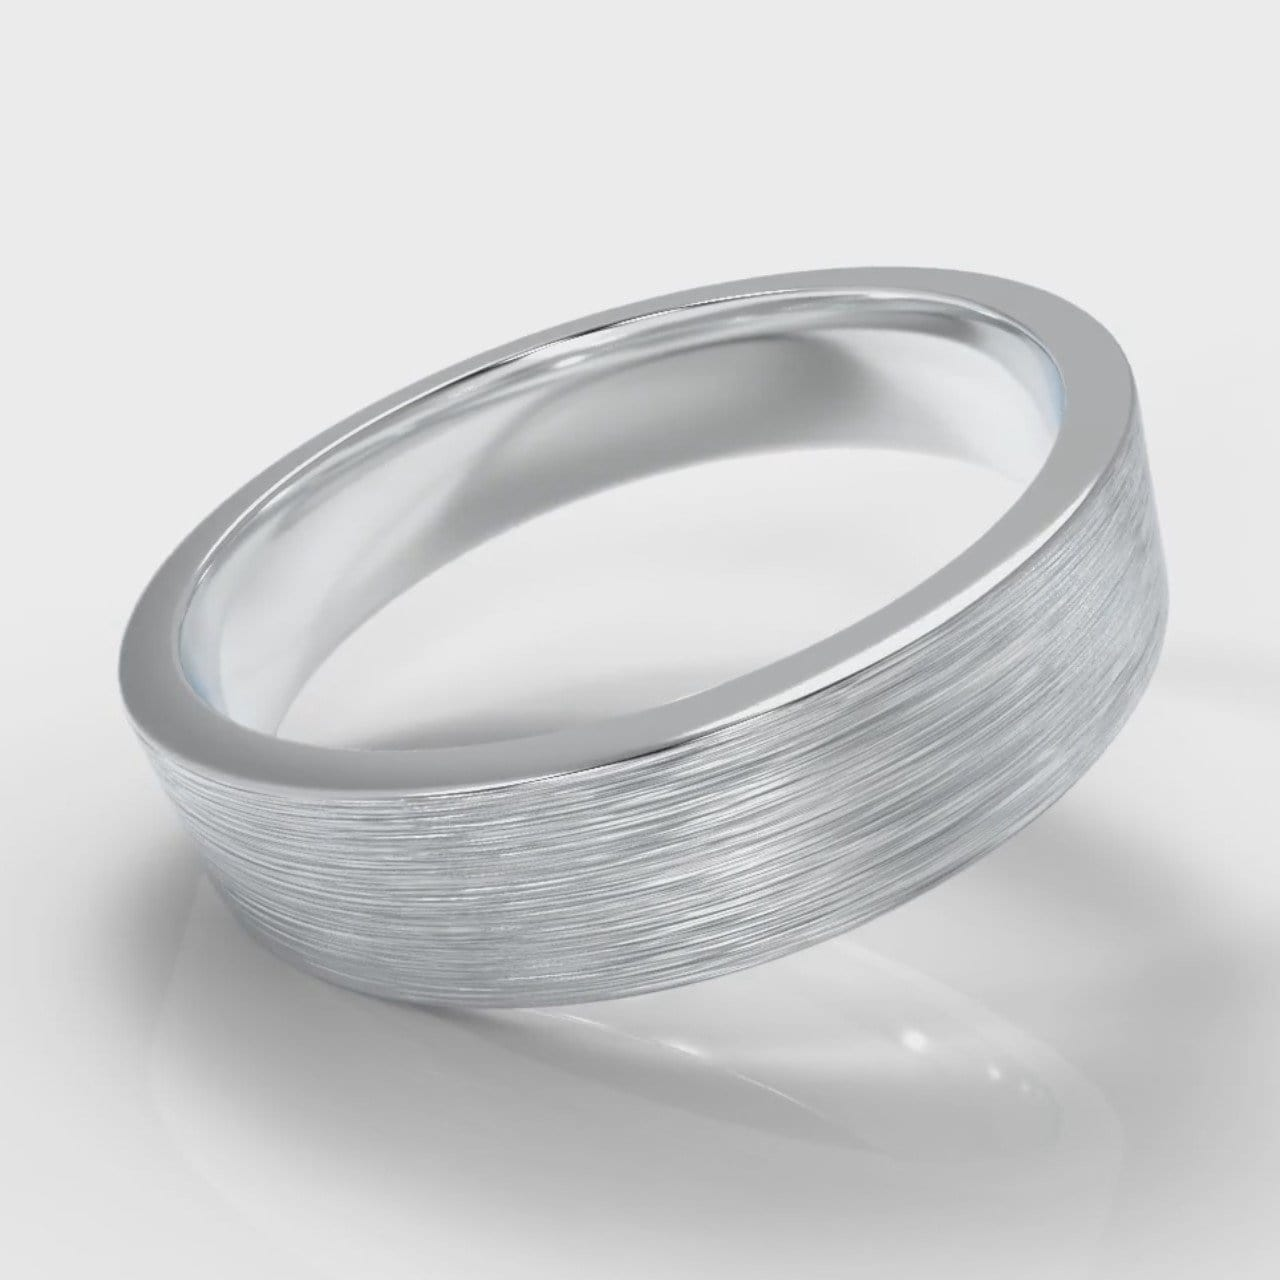 5mm Flat Top Comfort Fit Brushed Wedding Ring